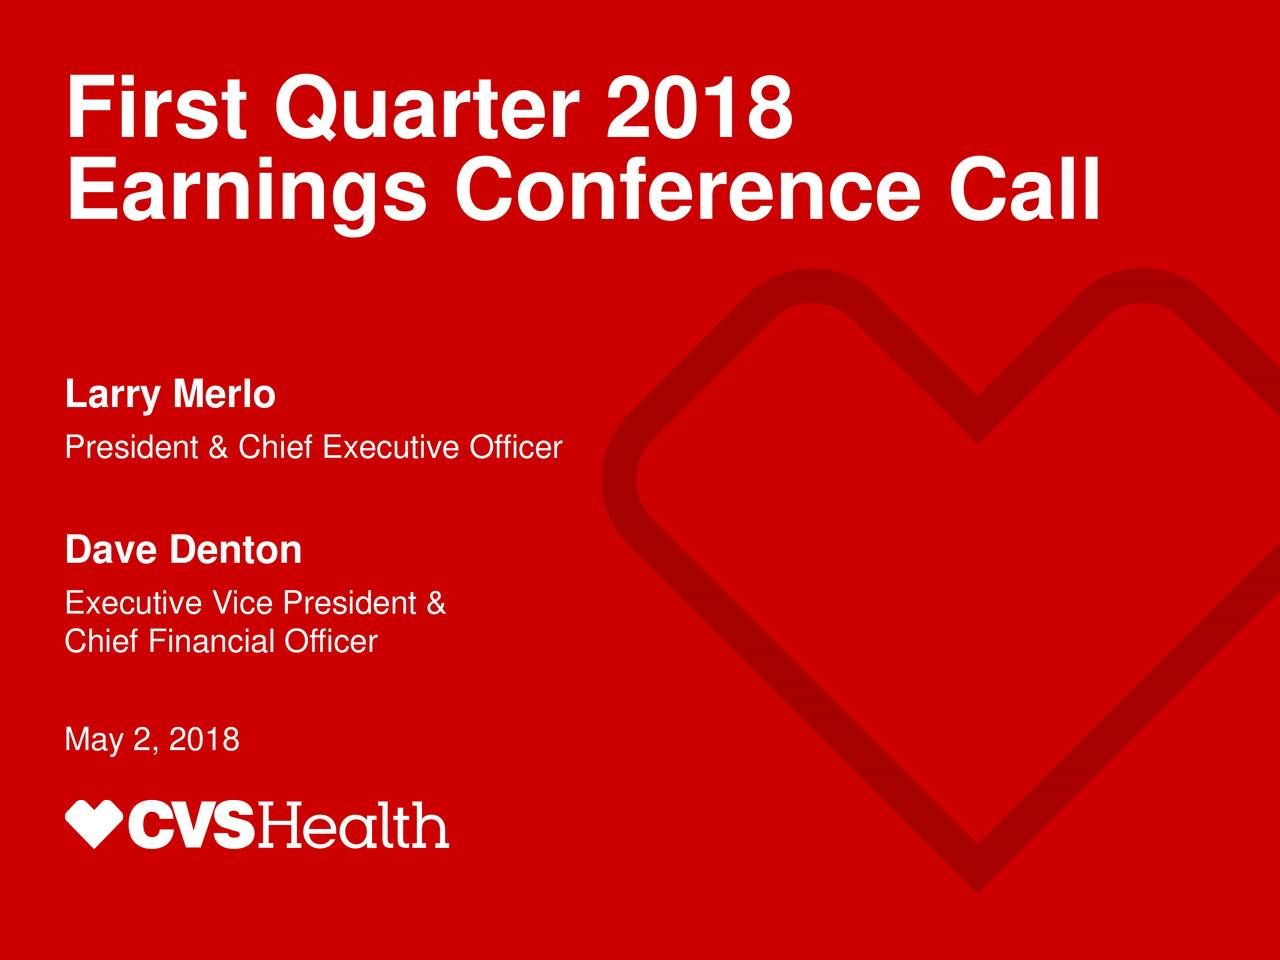 Earnings Conference Call Larry Merlo President & Chief Executive Officer Dave Denton Executive Vice President & Chief Financial Officer May 2, 2018